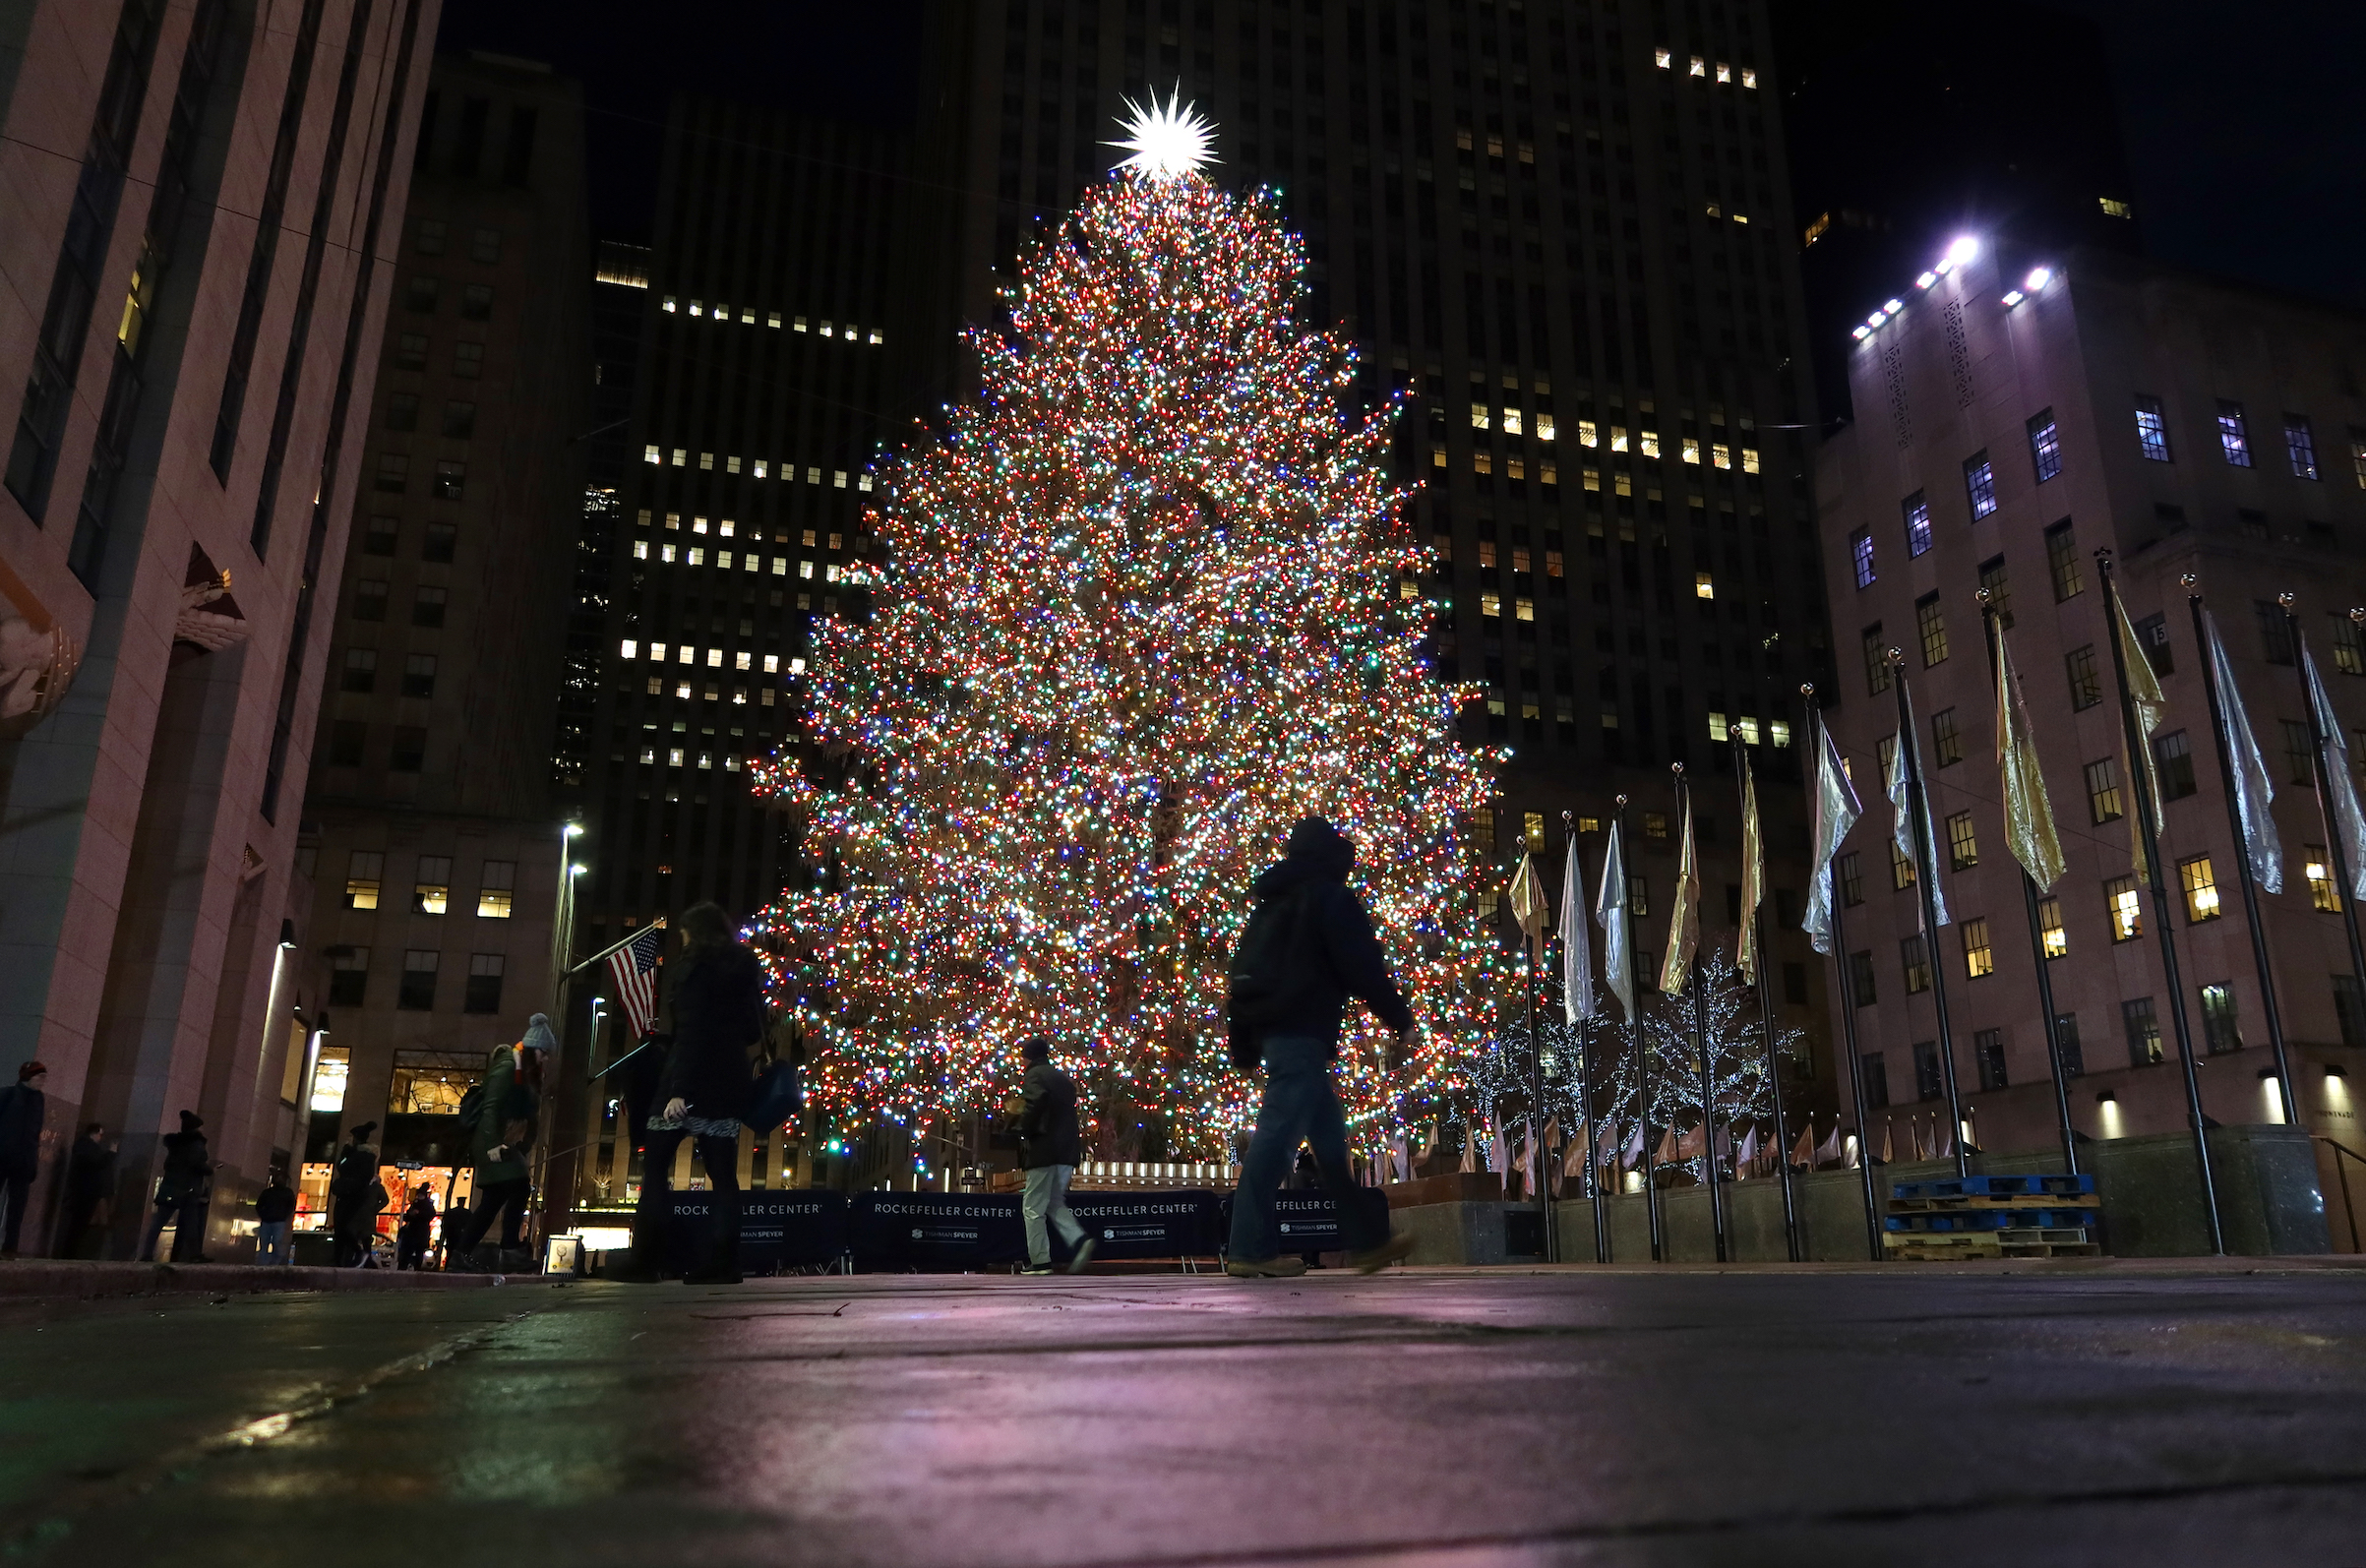 Christmas Tree Shortage 2020 New England The Real History of Christmas Trees | Time